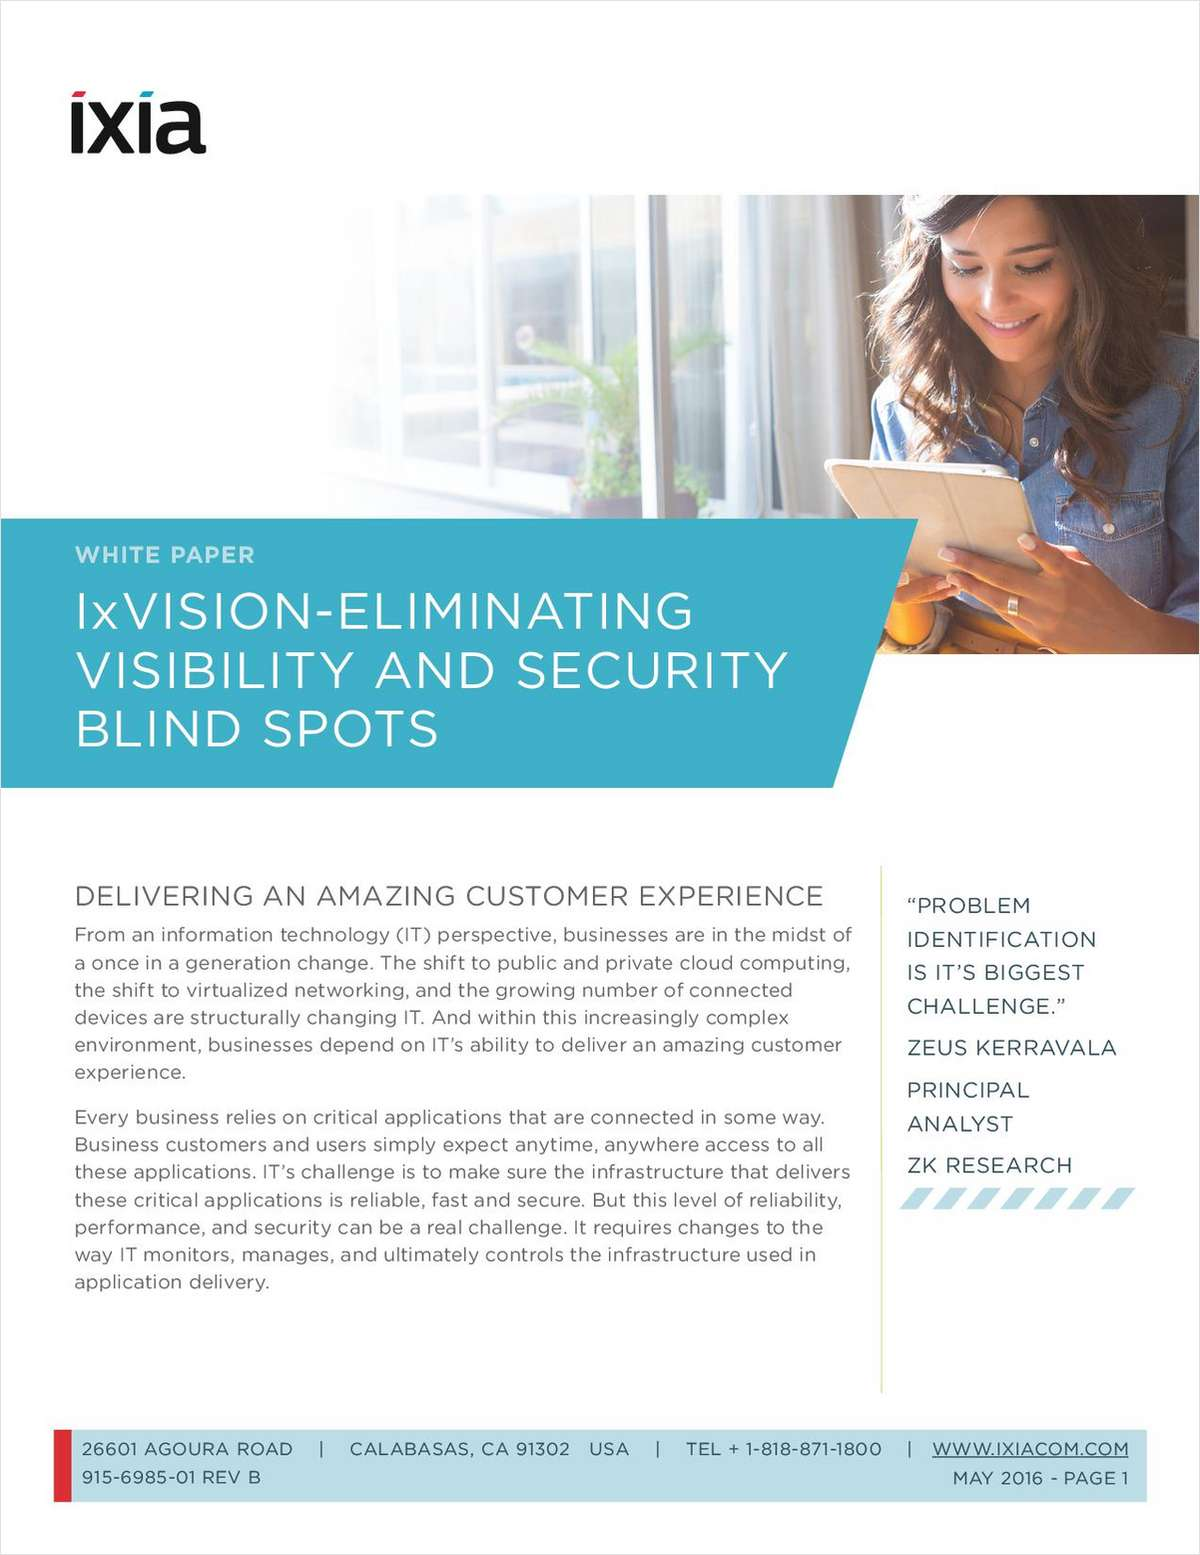 IxVision - Eliminating Visibility and Security Blind Spots